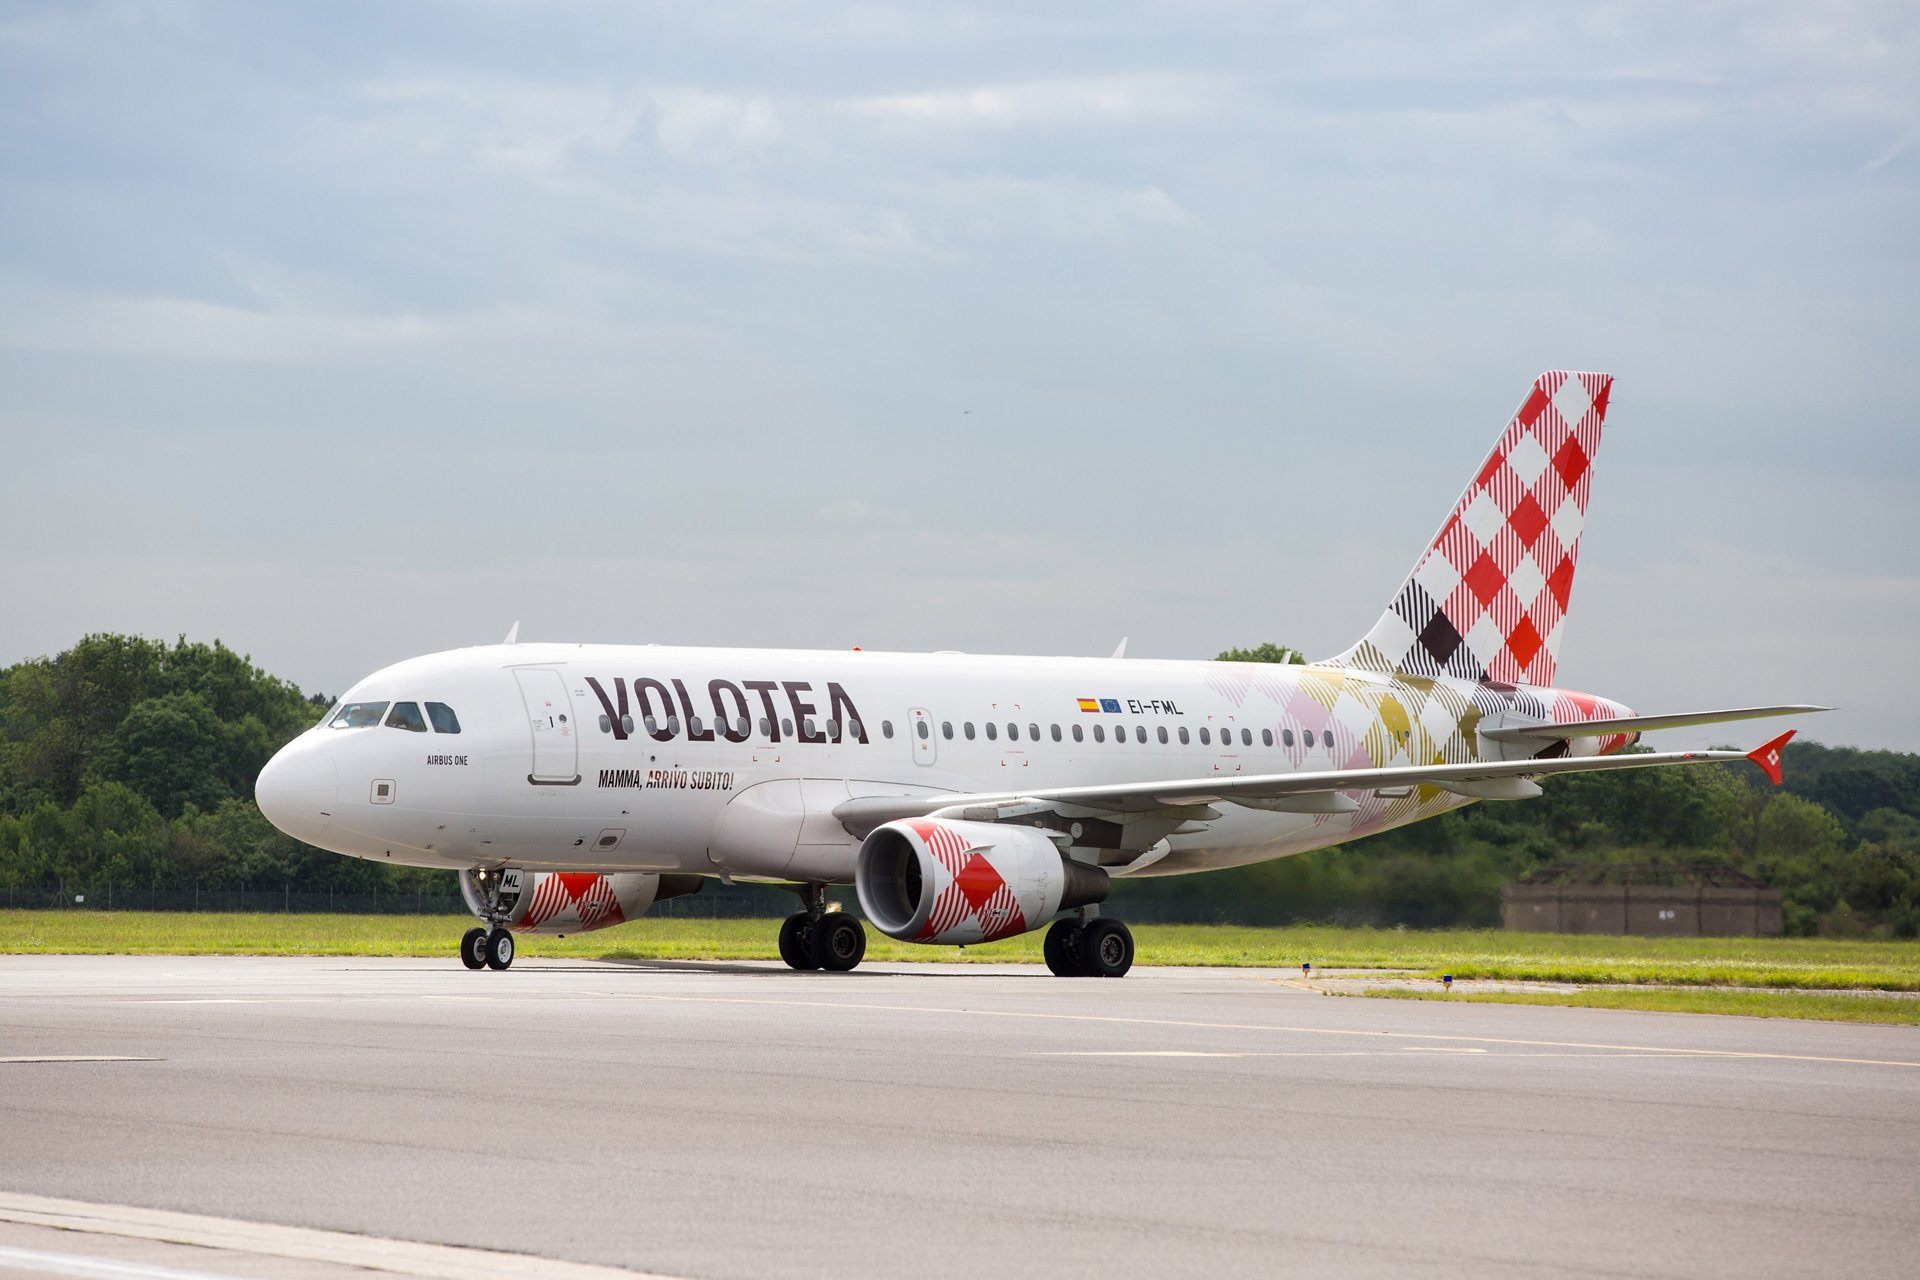 Volotea selected Airbus to train pilots for its growing fleet of Airbus A319s – which will exceed 50 aircraft in 2023